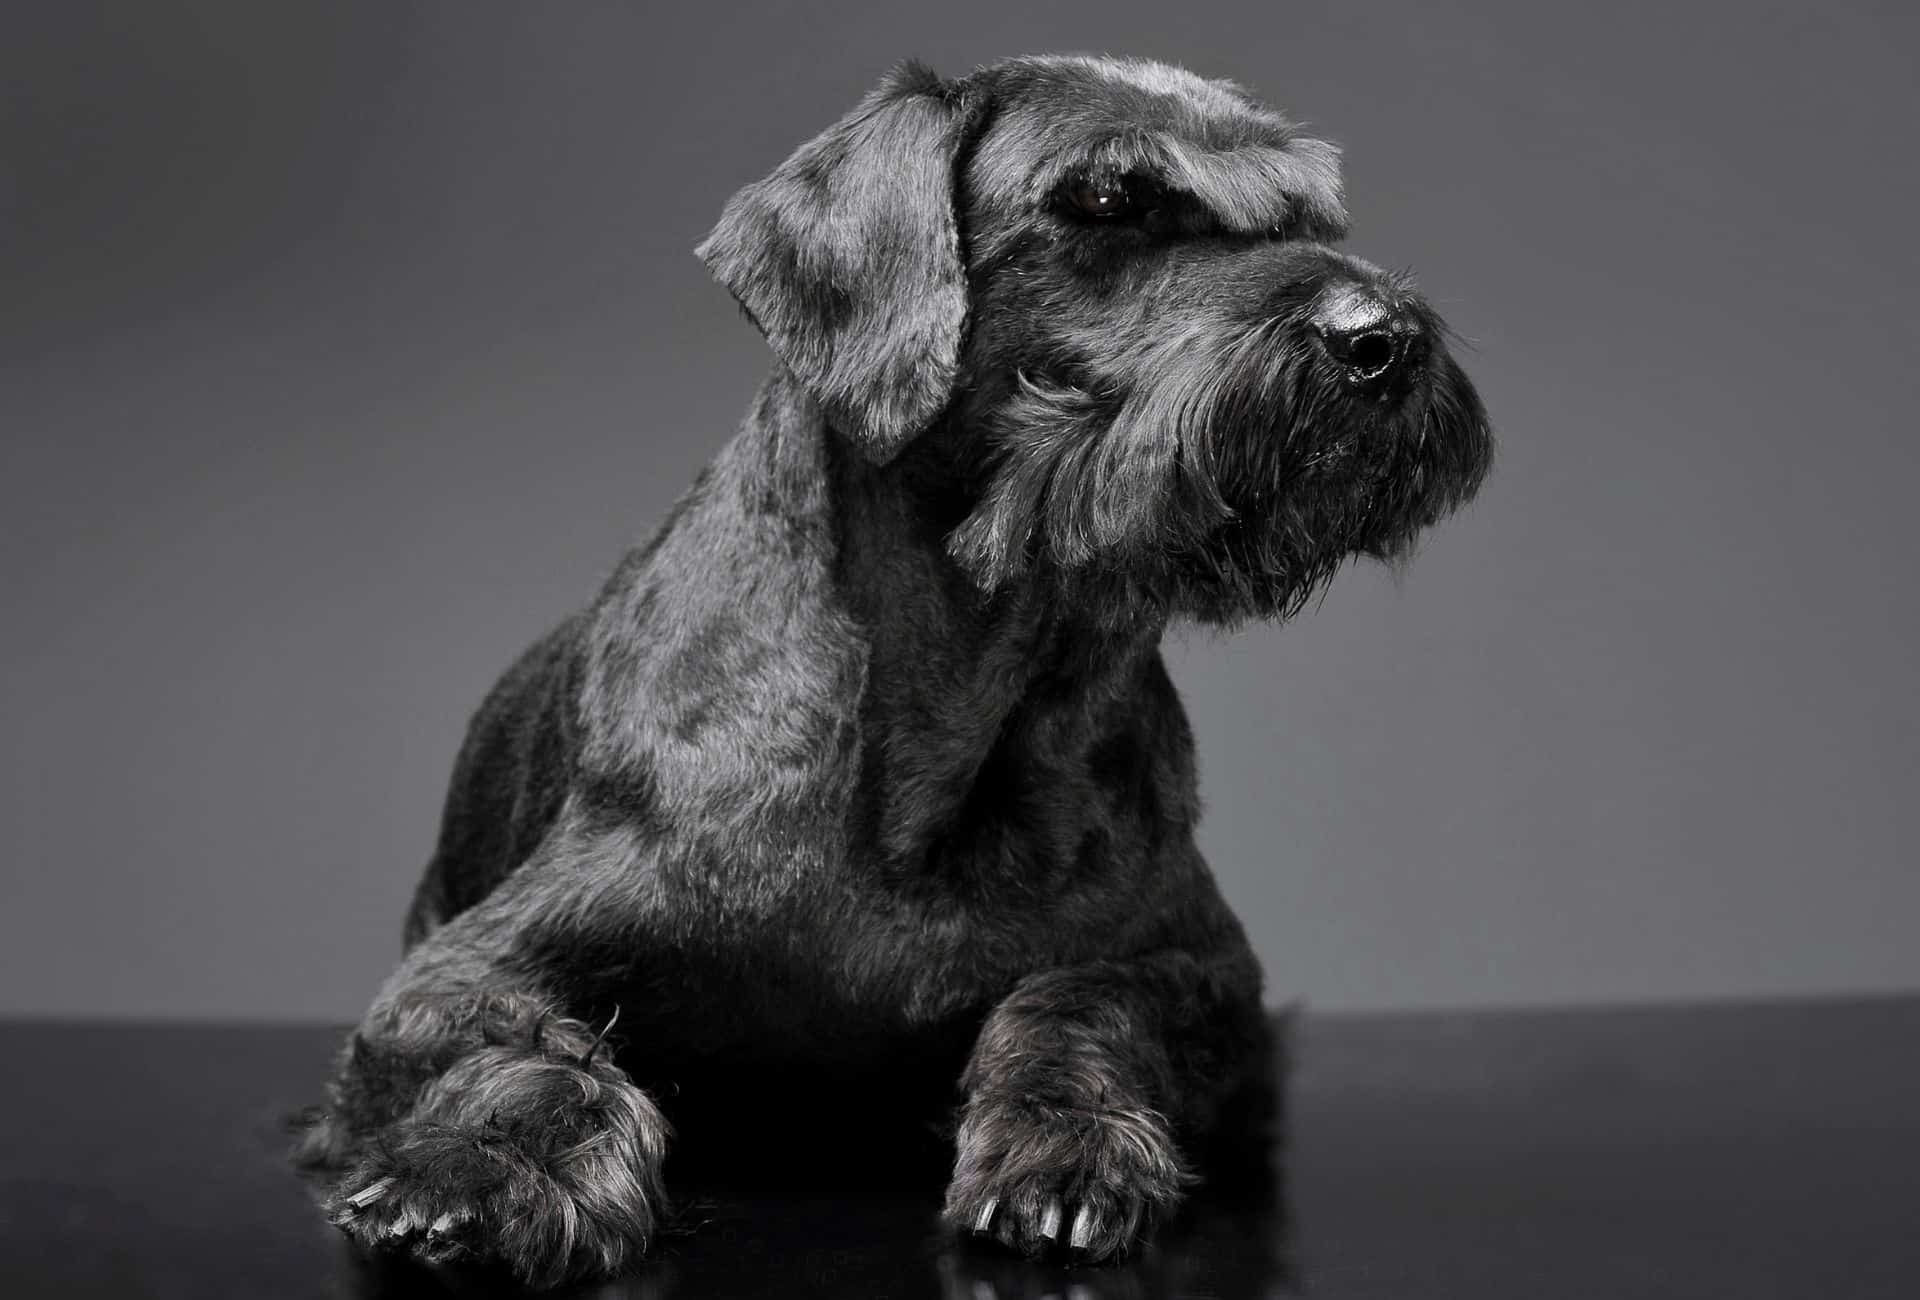 Giant Schnauzer as guard dog for fresh dog owners willing to learn.